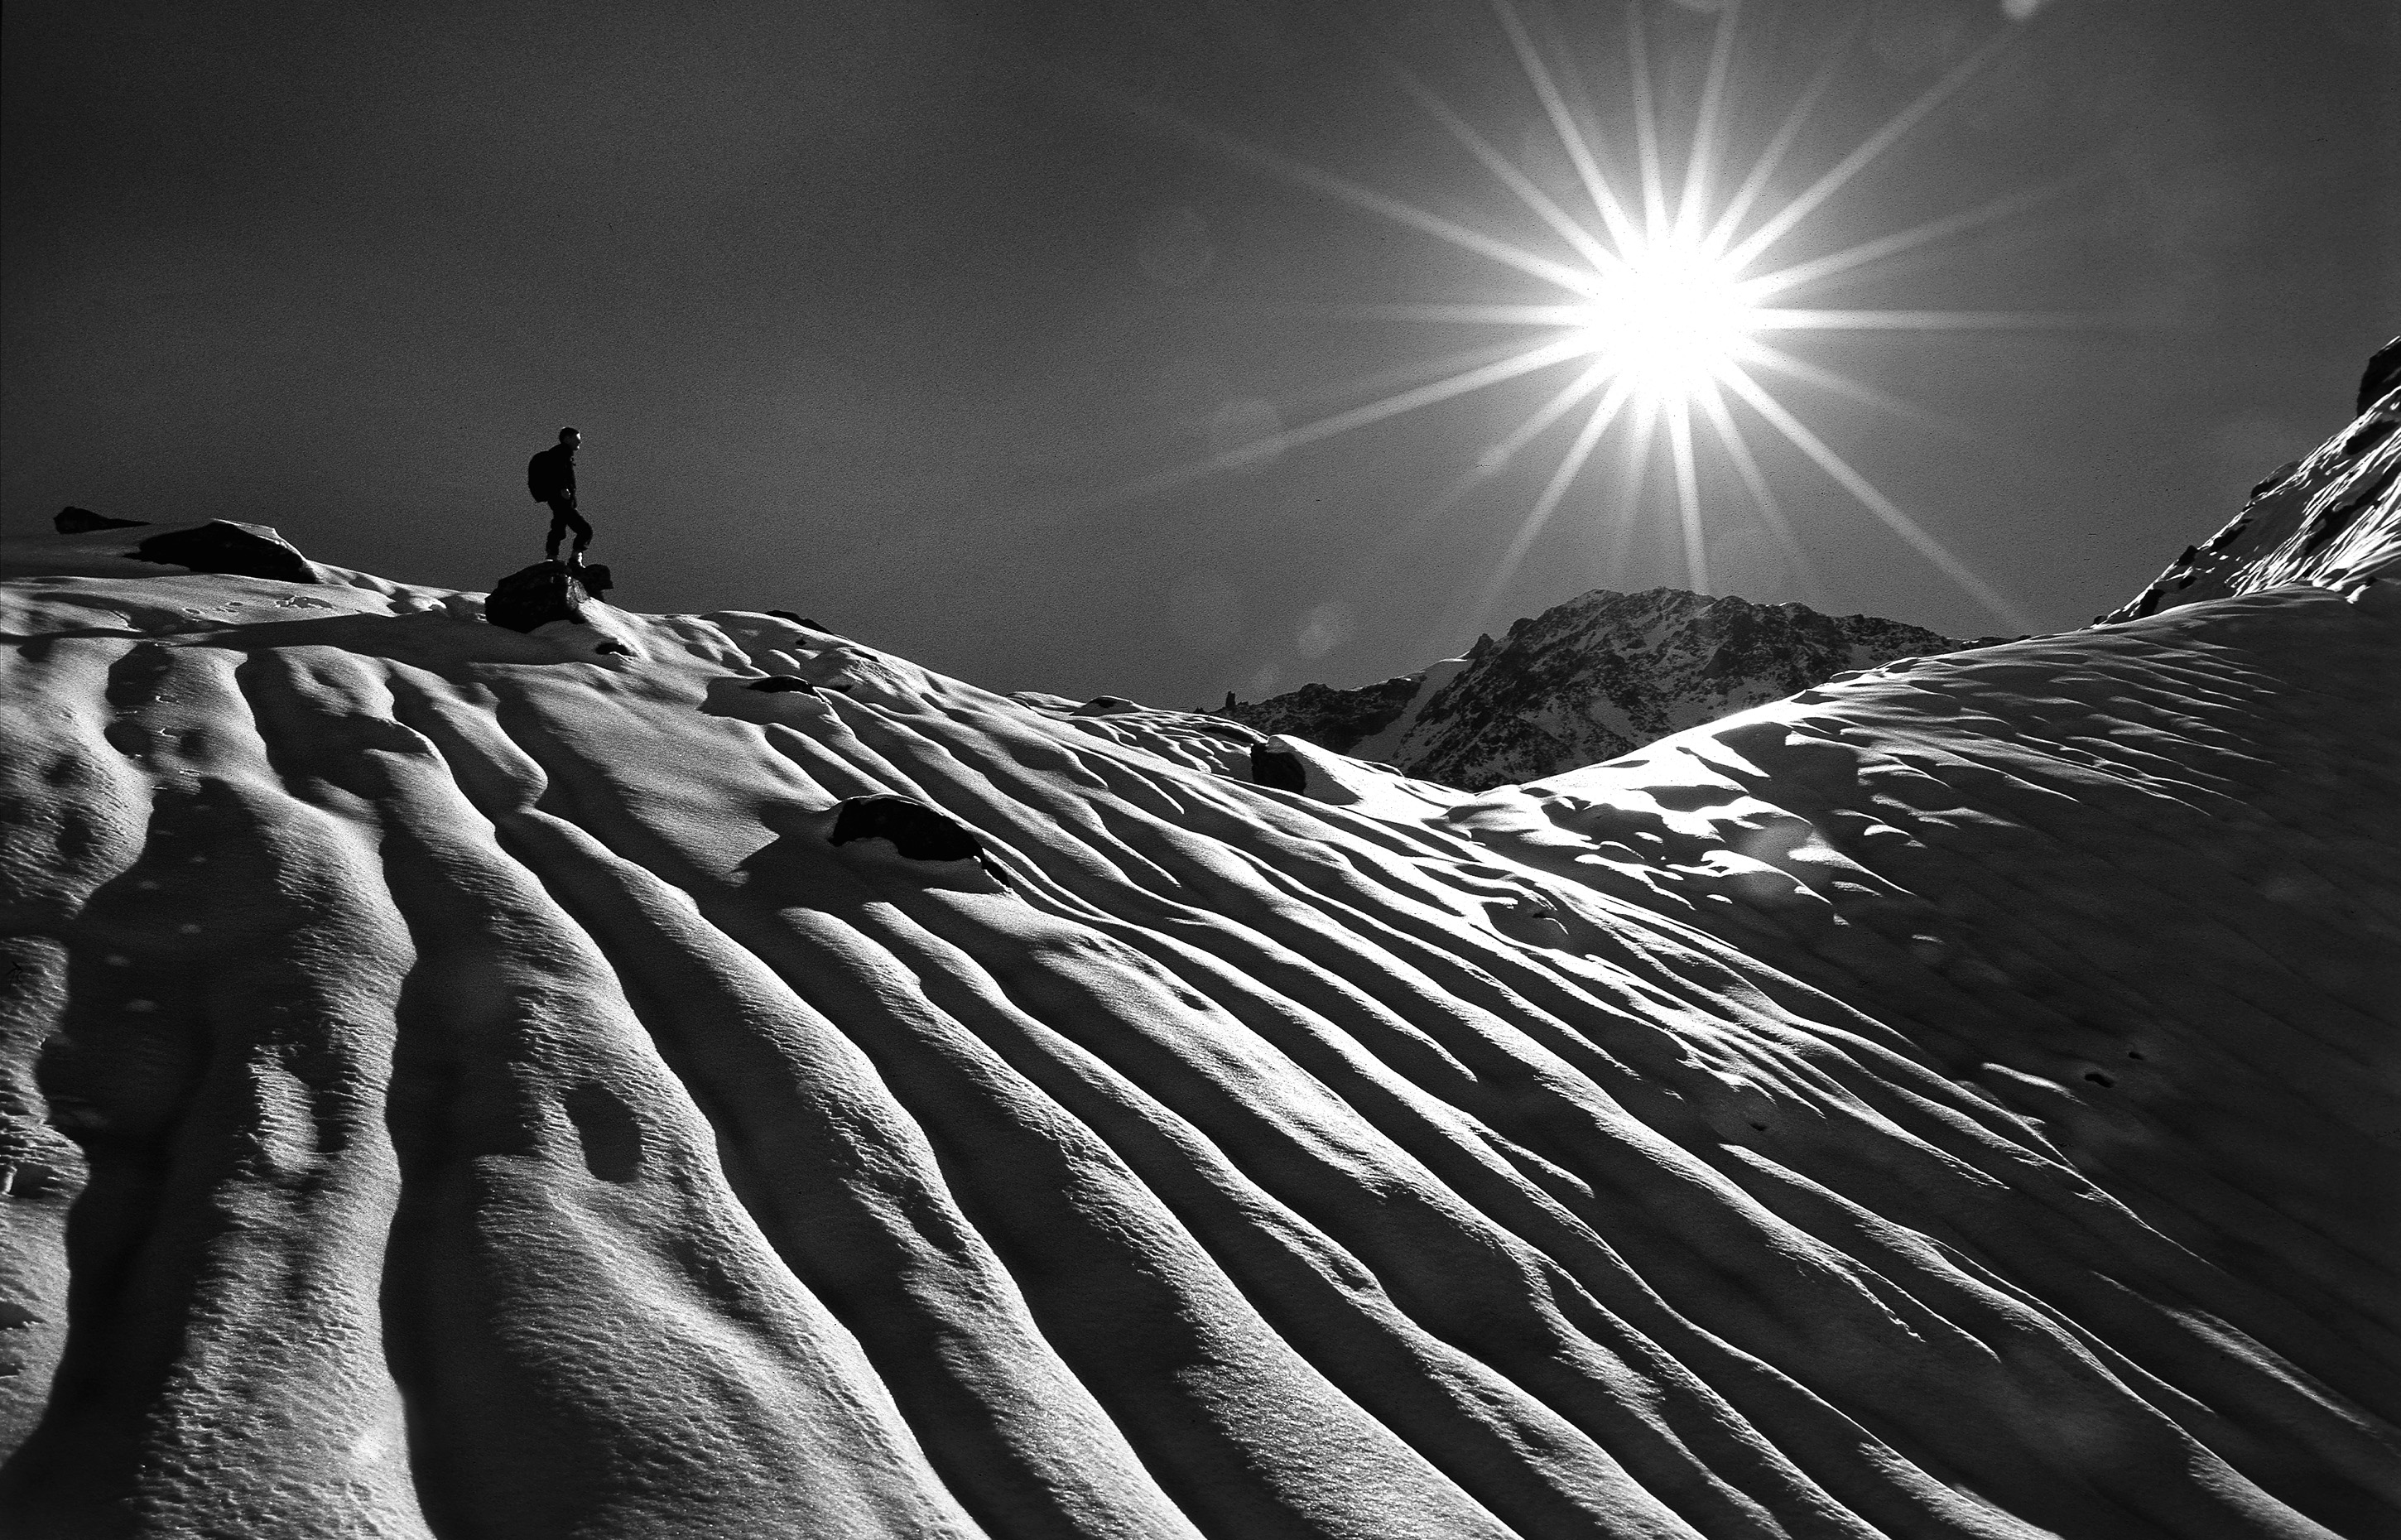 Man facing the sun and standing on the edge of a snowy mountain